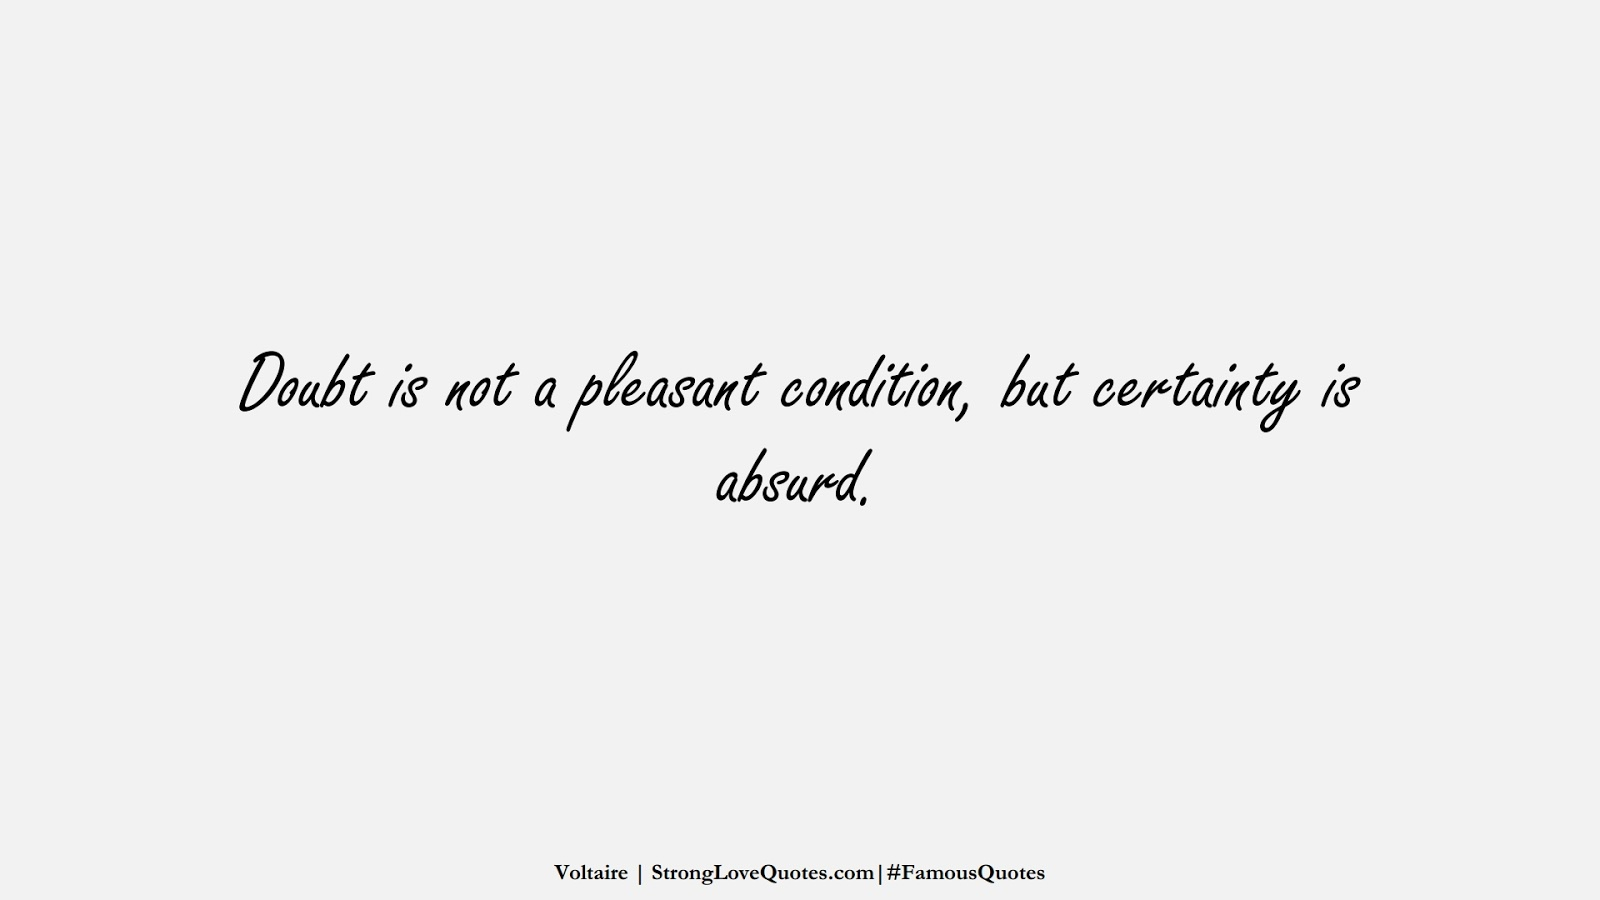 Doubt is not a pleasant condition, but certainty is absurd. (Voltaire);  #FamousQuotes